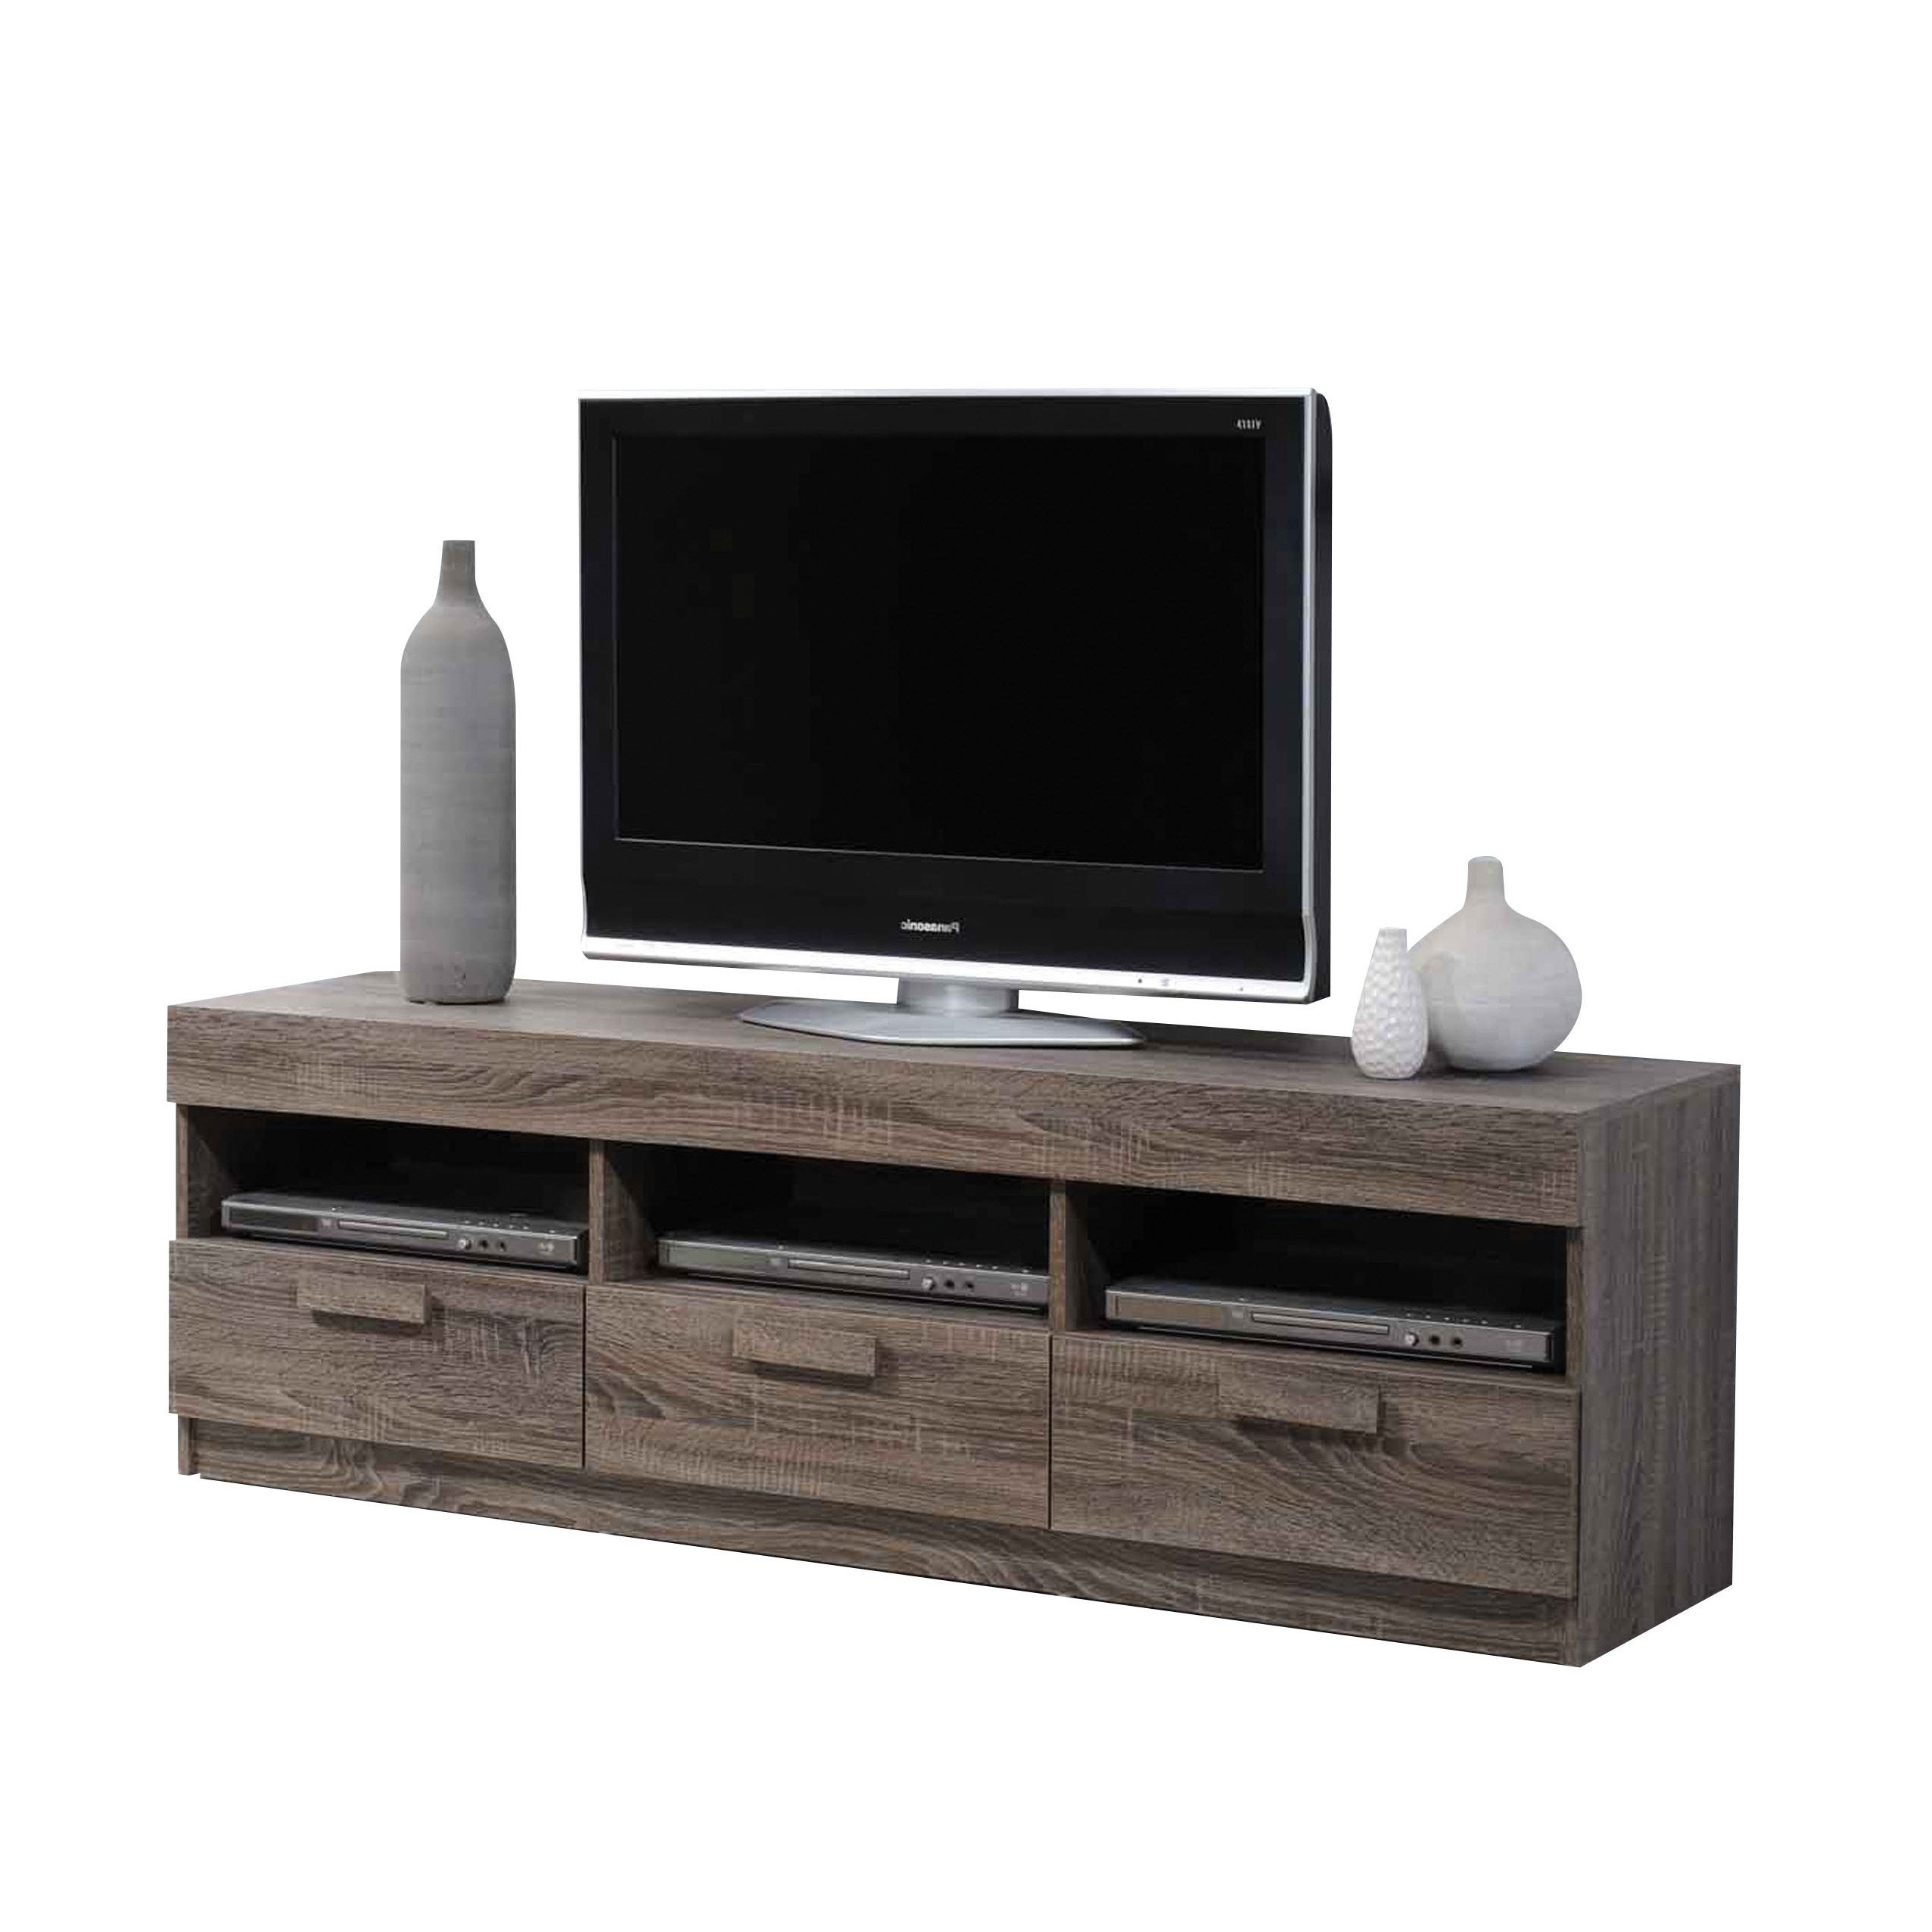 Shop Acme Furniture Alvin Rustic Oak Tv Stand – Free Shipping Today Intended For 2017 Rustic Oak Tv Stands (Gallery 18 of 20)